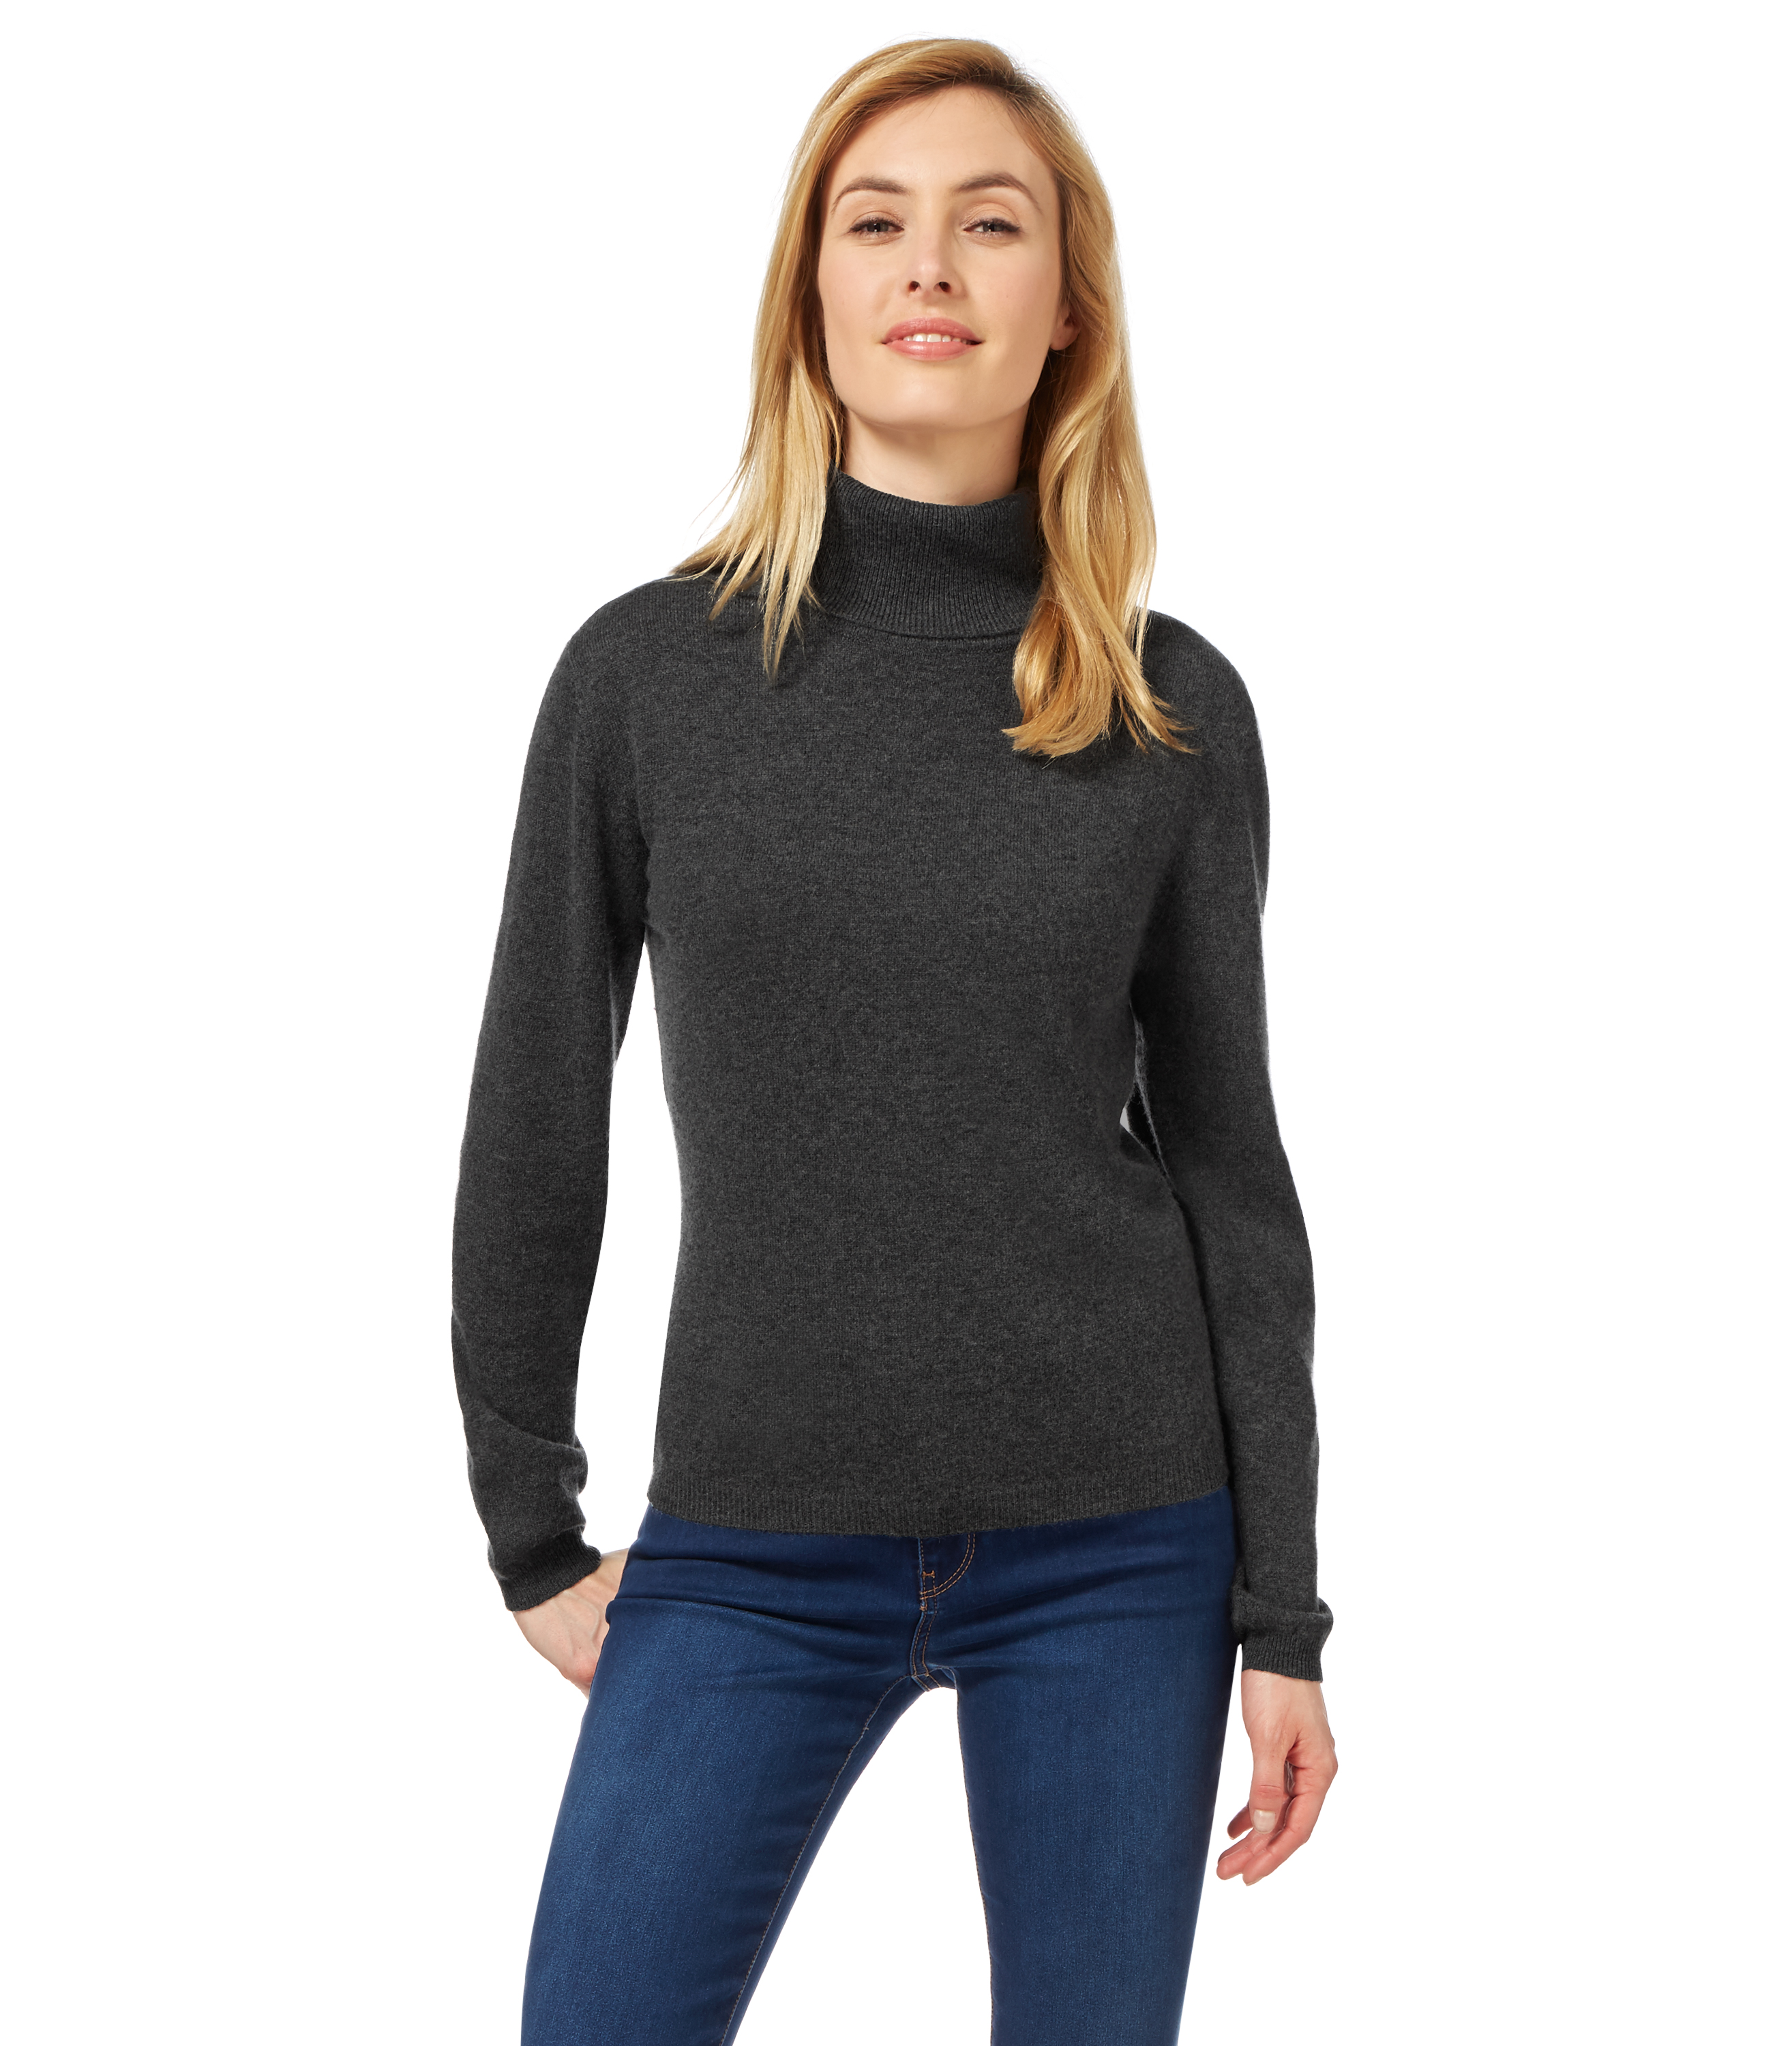 Home New In Jumpers & Sweaters Jumpers & Sweaters Welcome to our collection of lovingly designed, carefully made jumpers which are easy to wear. Our % natural yarns and blends feel soft against the skin and are completely breathable for year-round comfort.